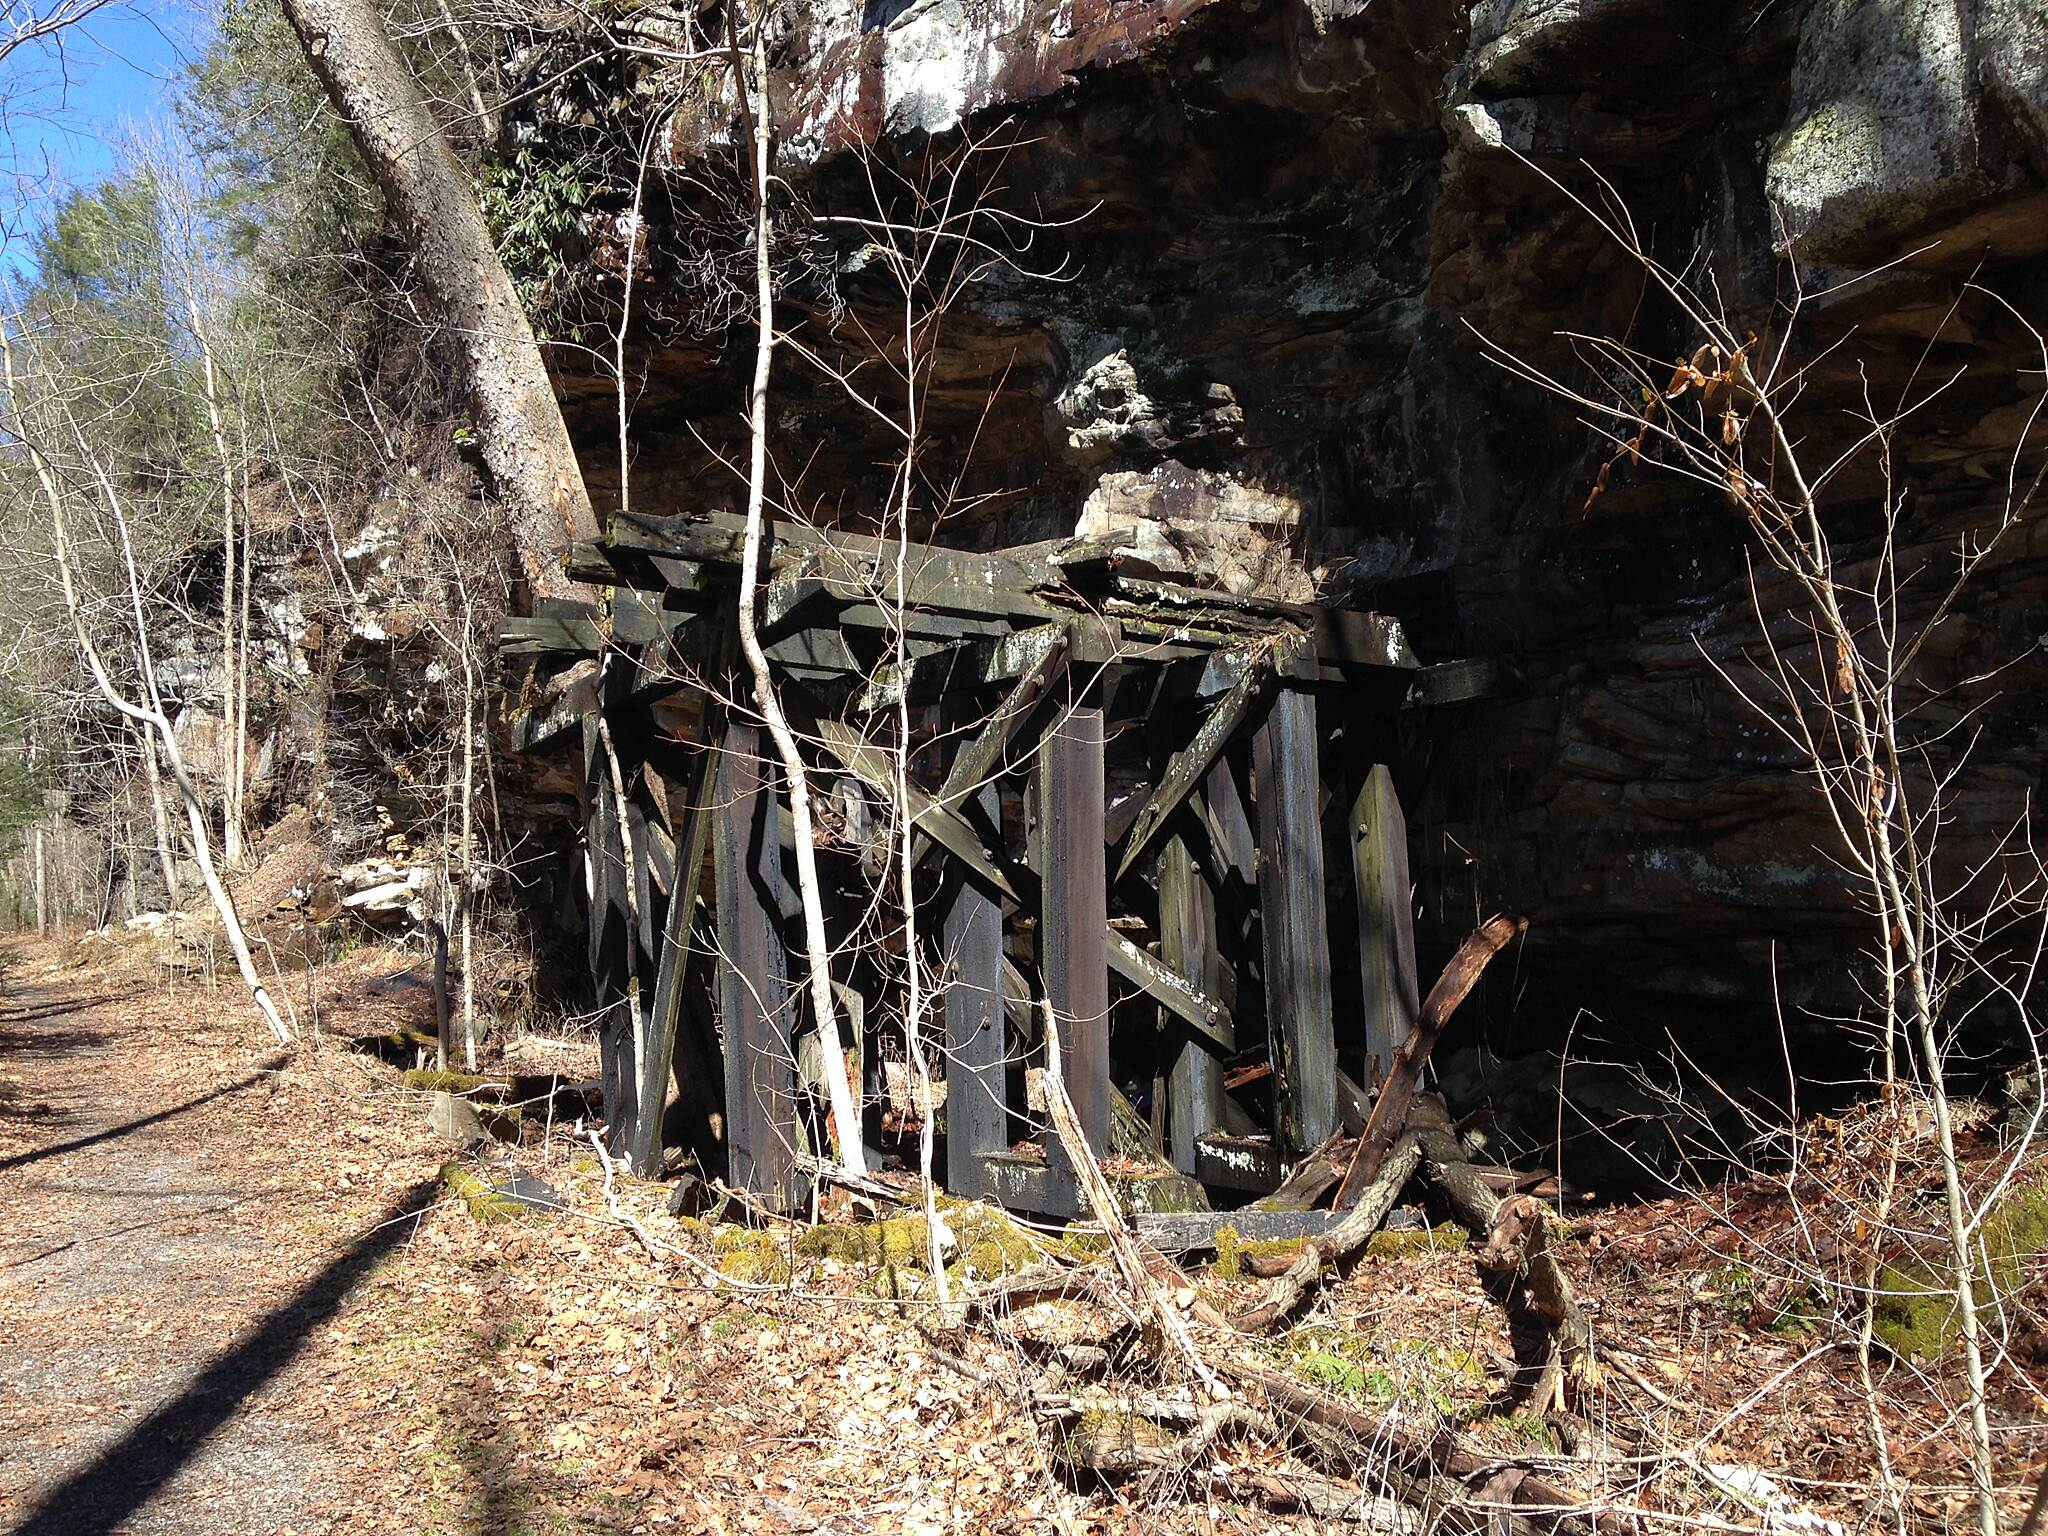 Hawks Nest Rail Trail Railroad remains